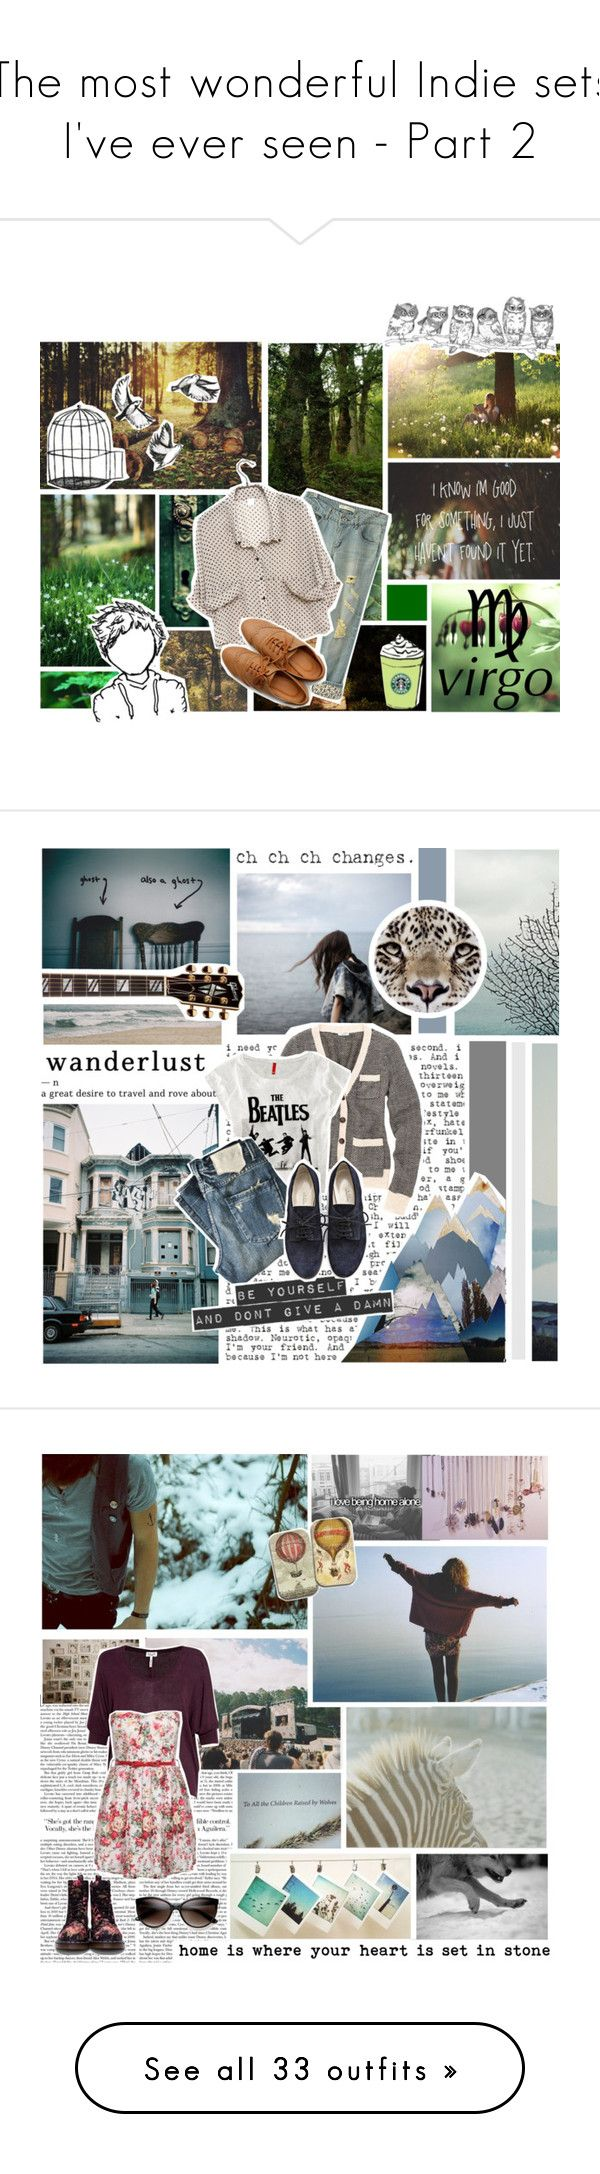 """""""The most wonderful Indie sets I've ever seen - Part 2"""" by mrsochrasy ❤ liked on Polyvore featuring PLANT, INDIE HAIR, Ollio, boyfriend jeans, blouses, virgo, zodiac, edward sharpe and the magnetic zeros, oxfords and green"""